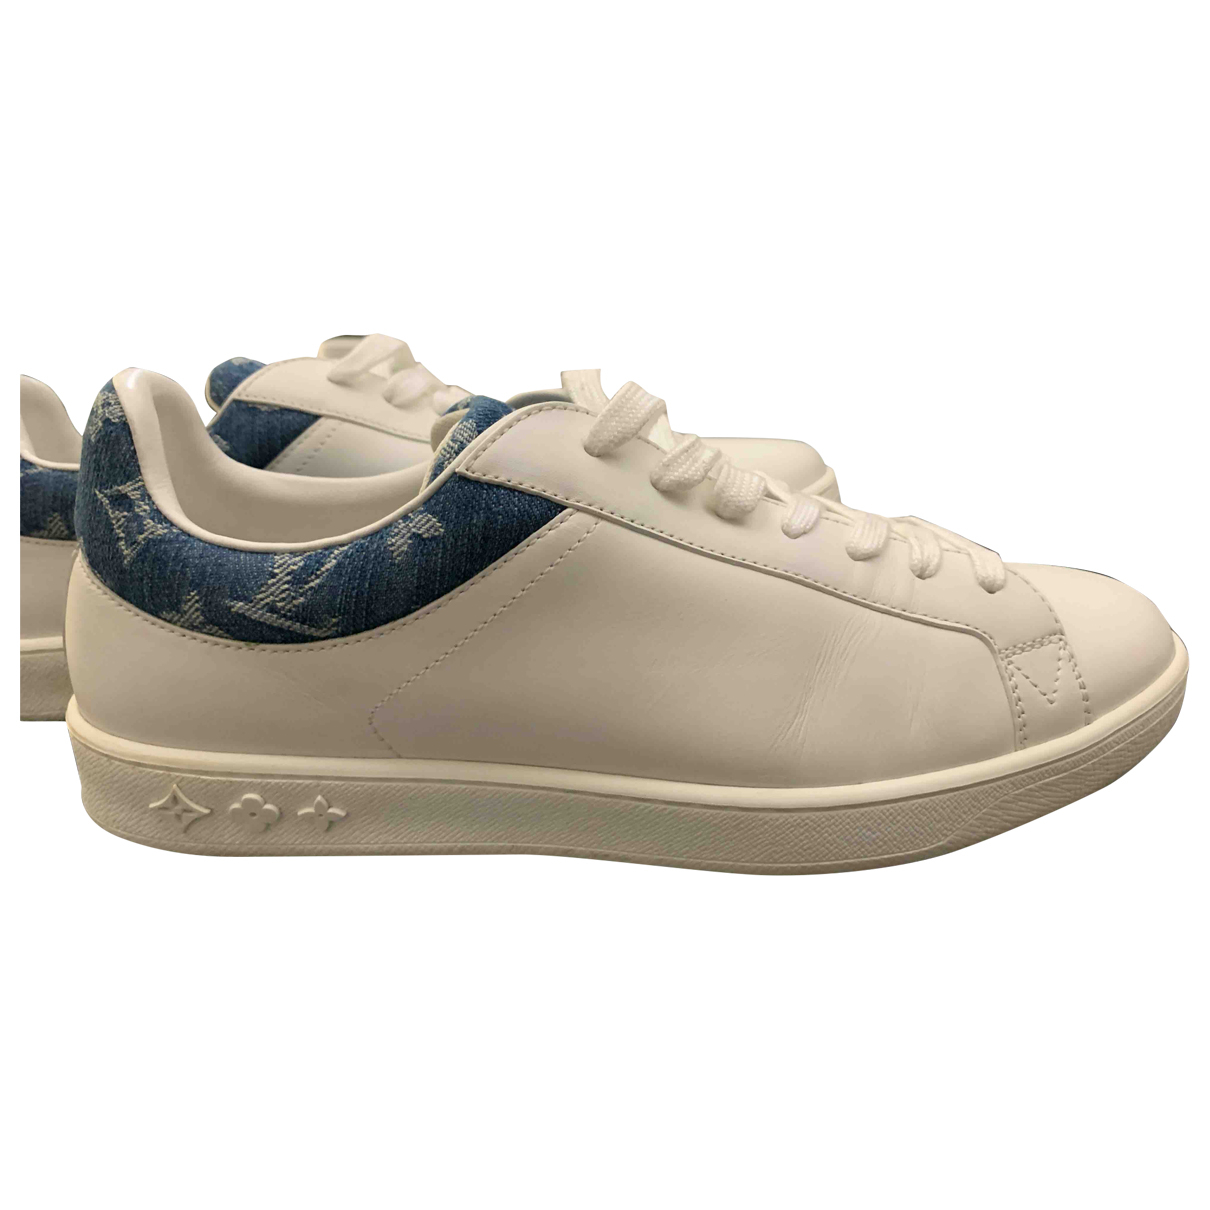 Louis Vuitton Luxembourg White Leather Trainers for Men 6 UK